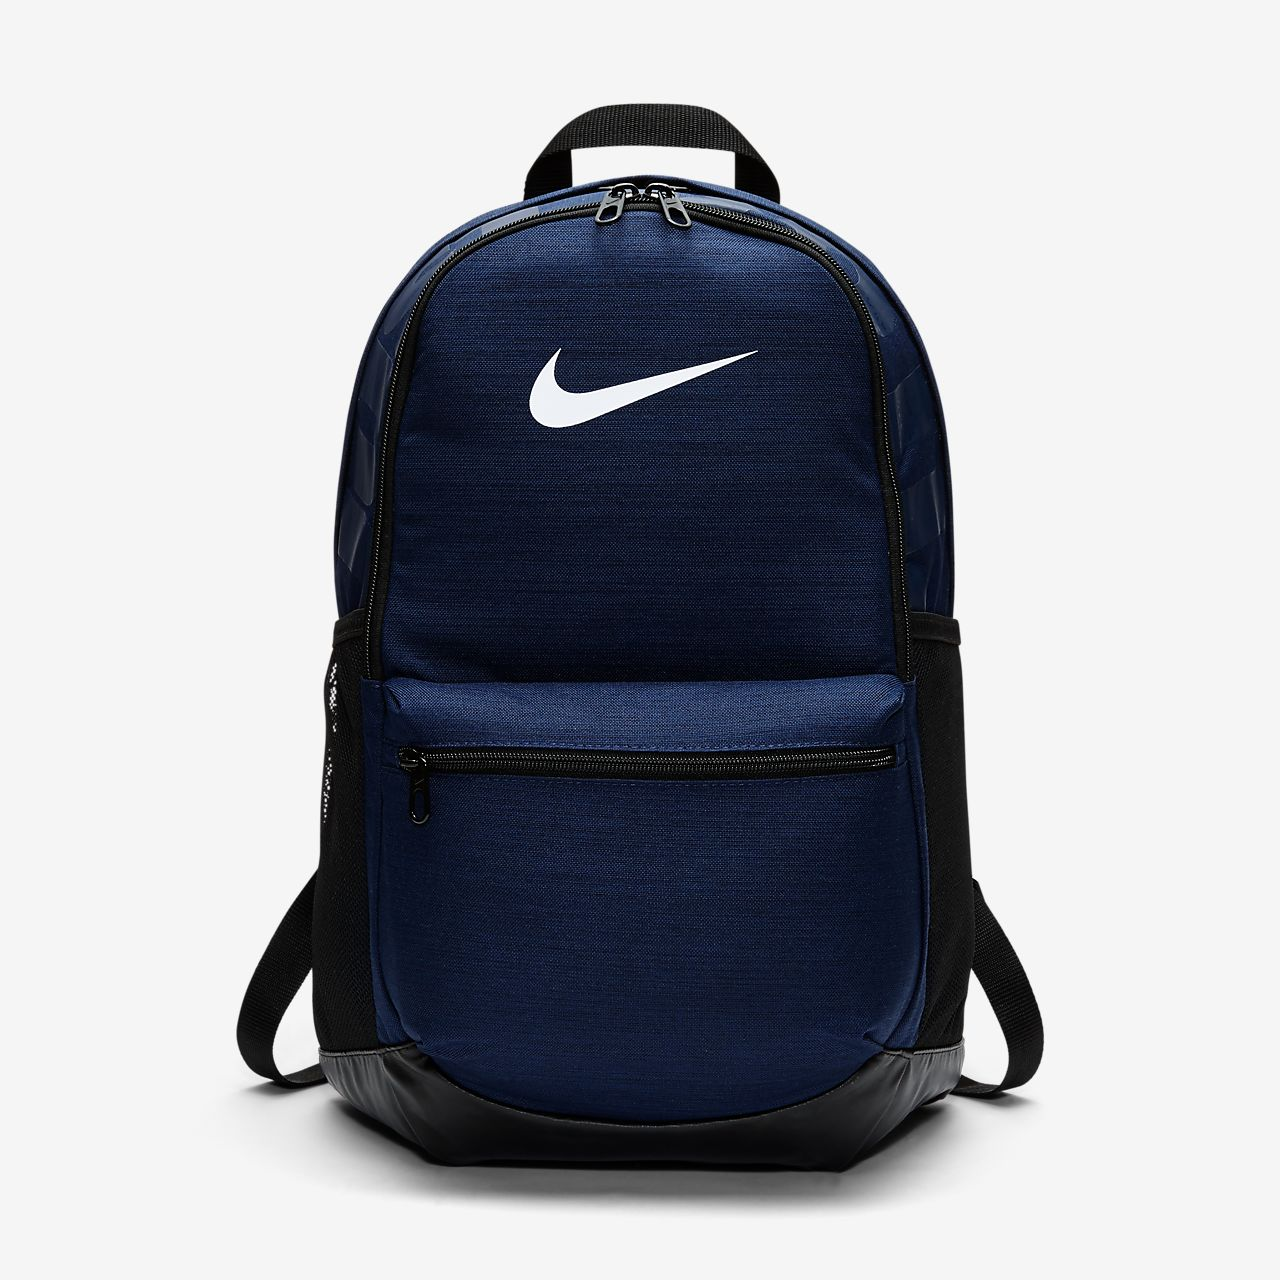 96aa2b8315 Nike Brasilia (Medium) Training Backpack. Nike.com CA